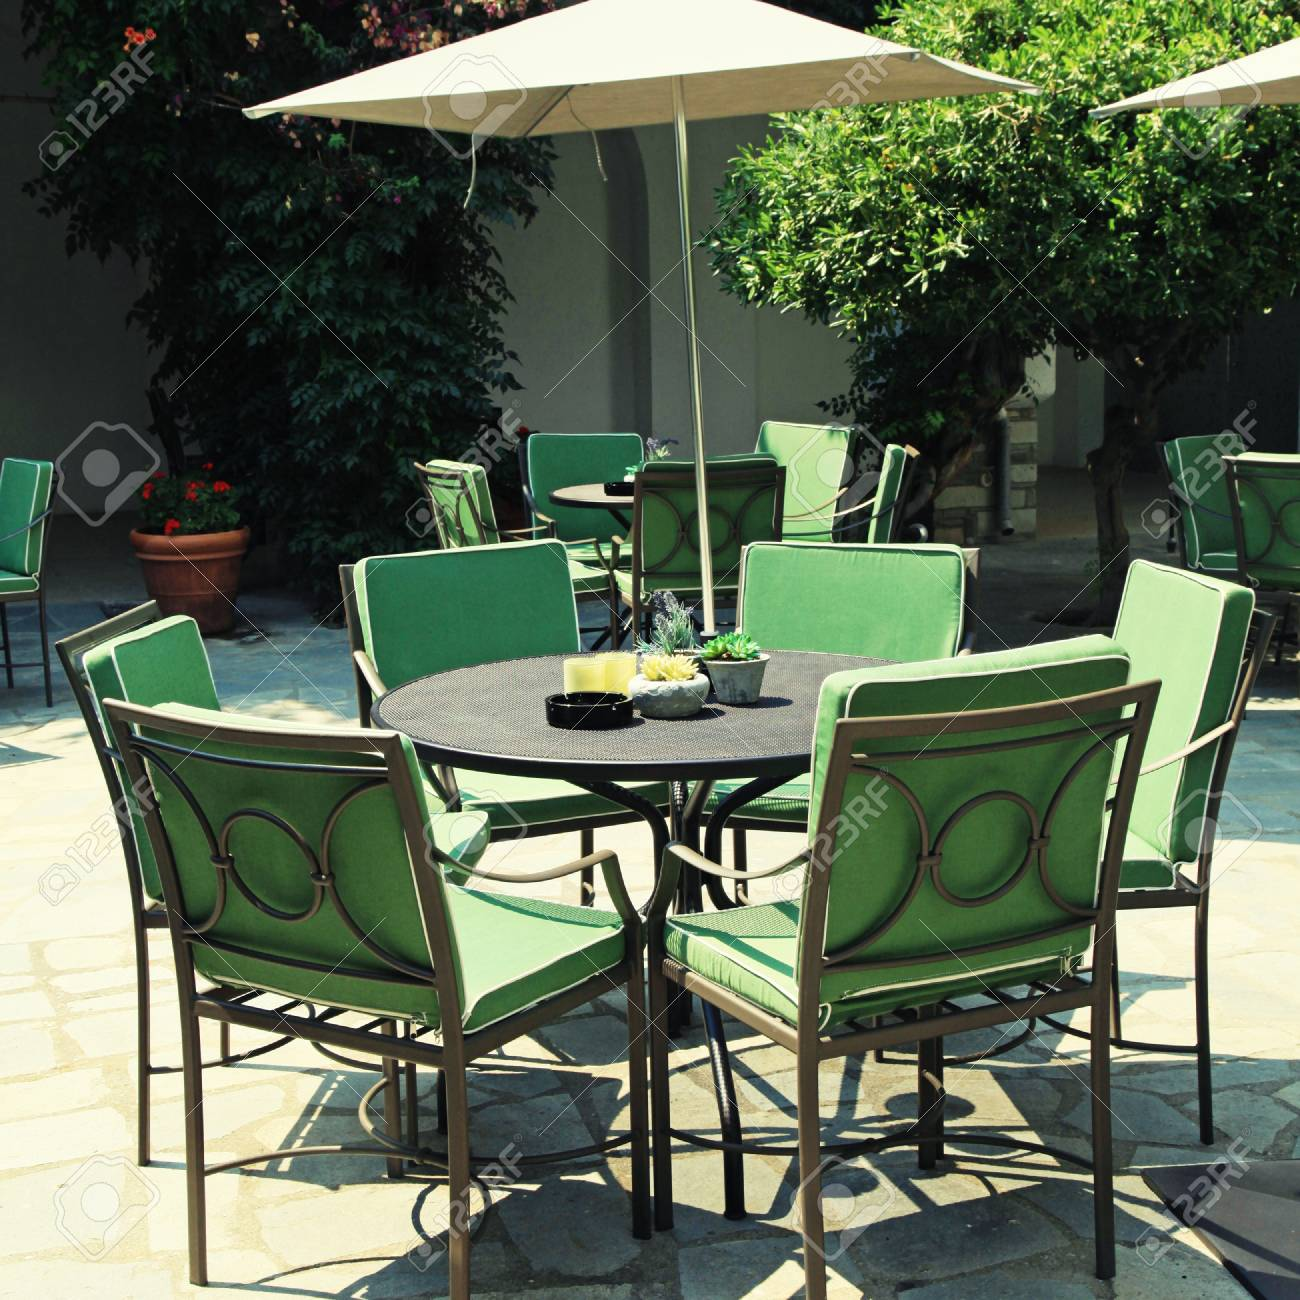 Iron Tables And Chairs With Parasol In Beautiful Mediterranean Patio Cafe.  Square Toned Image,